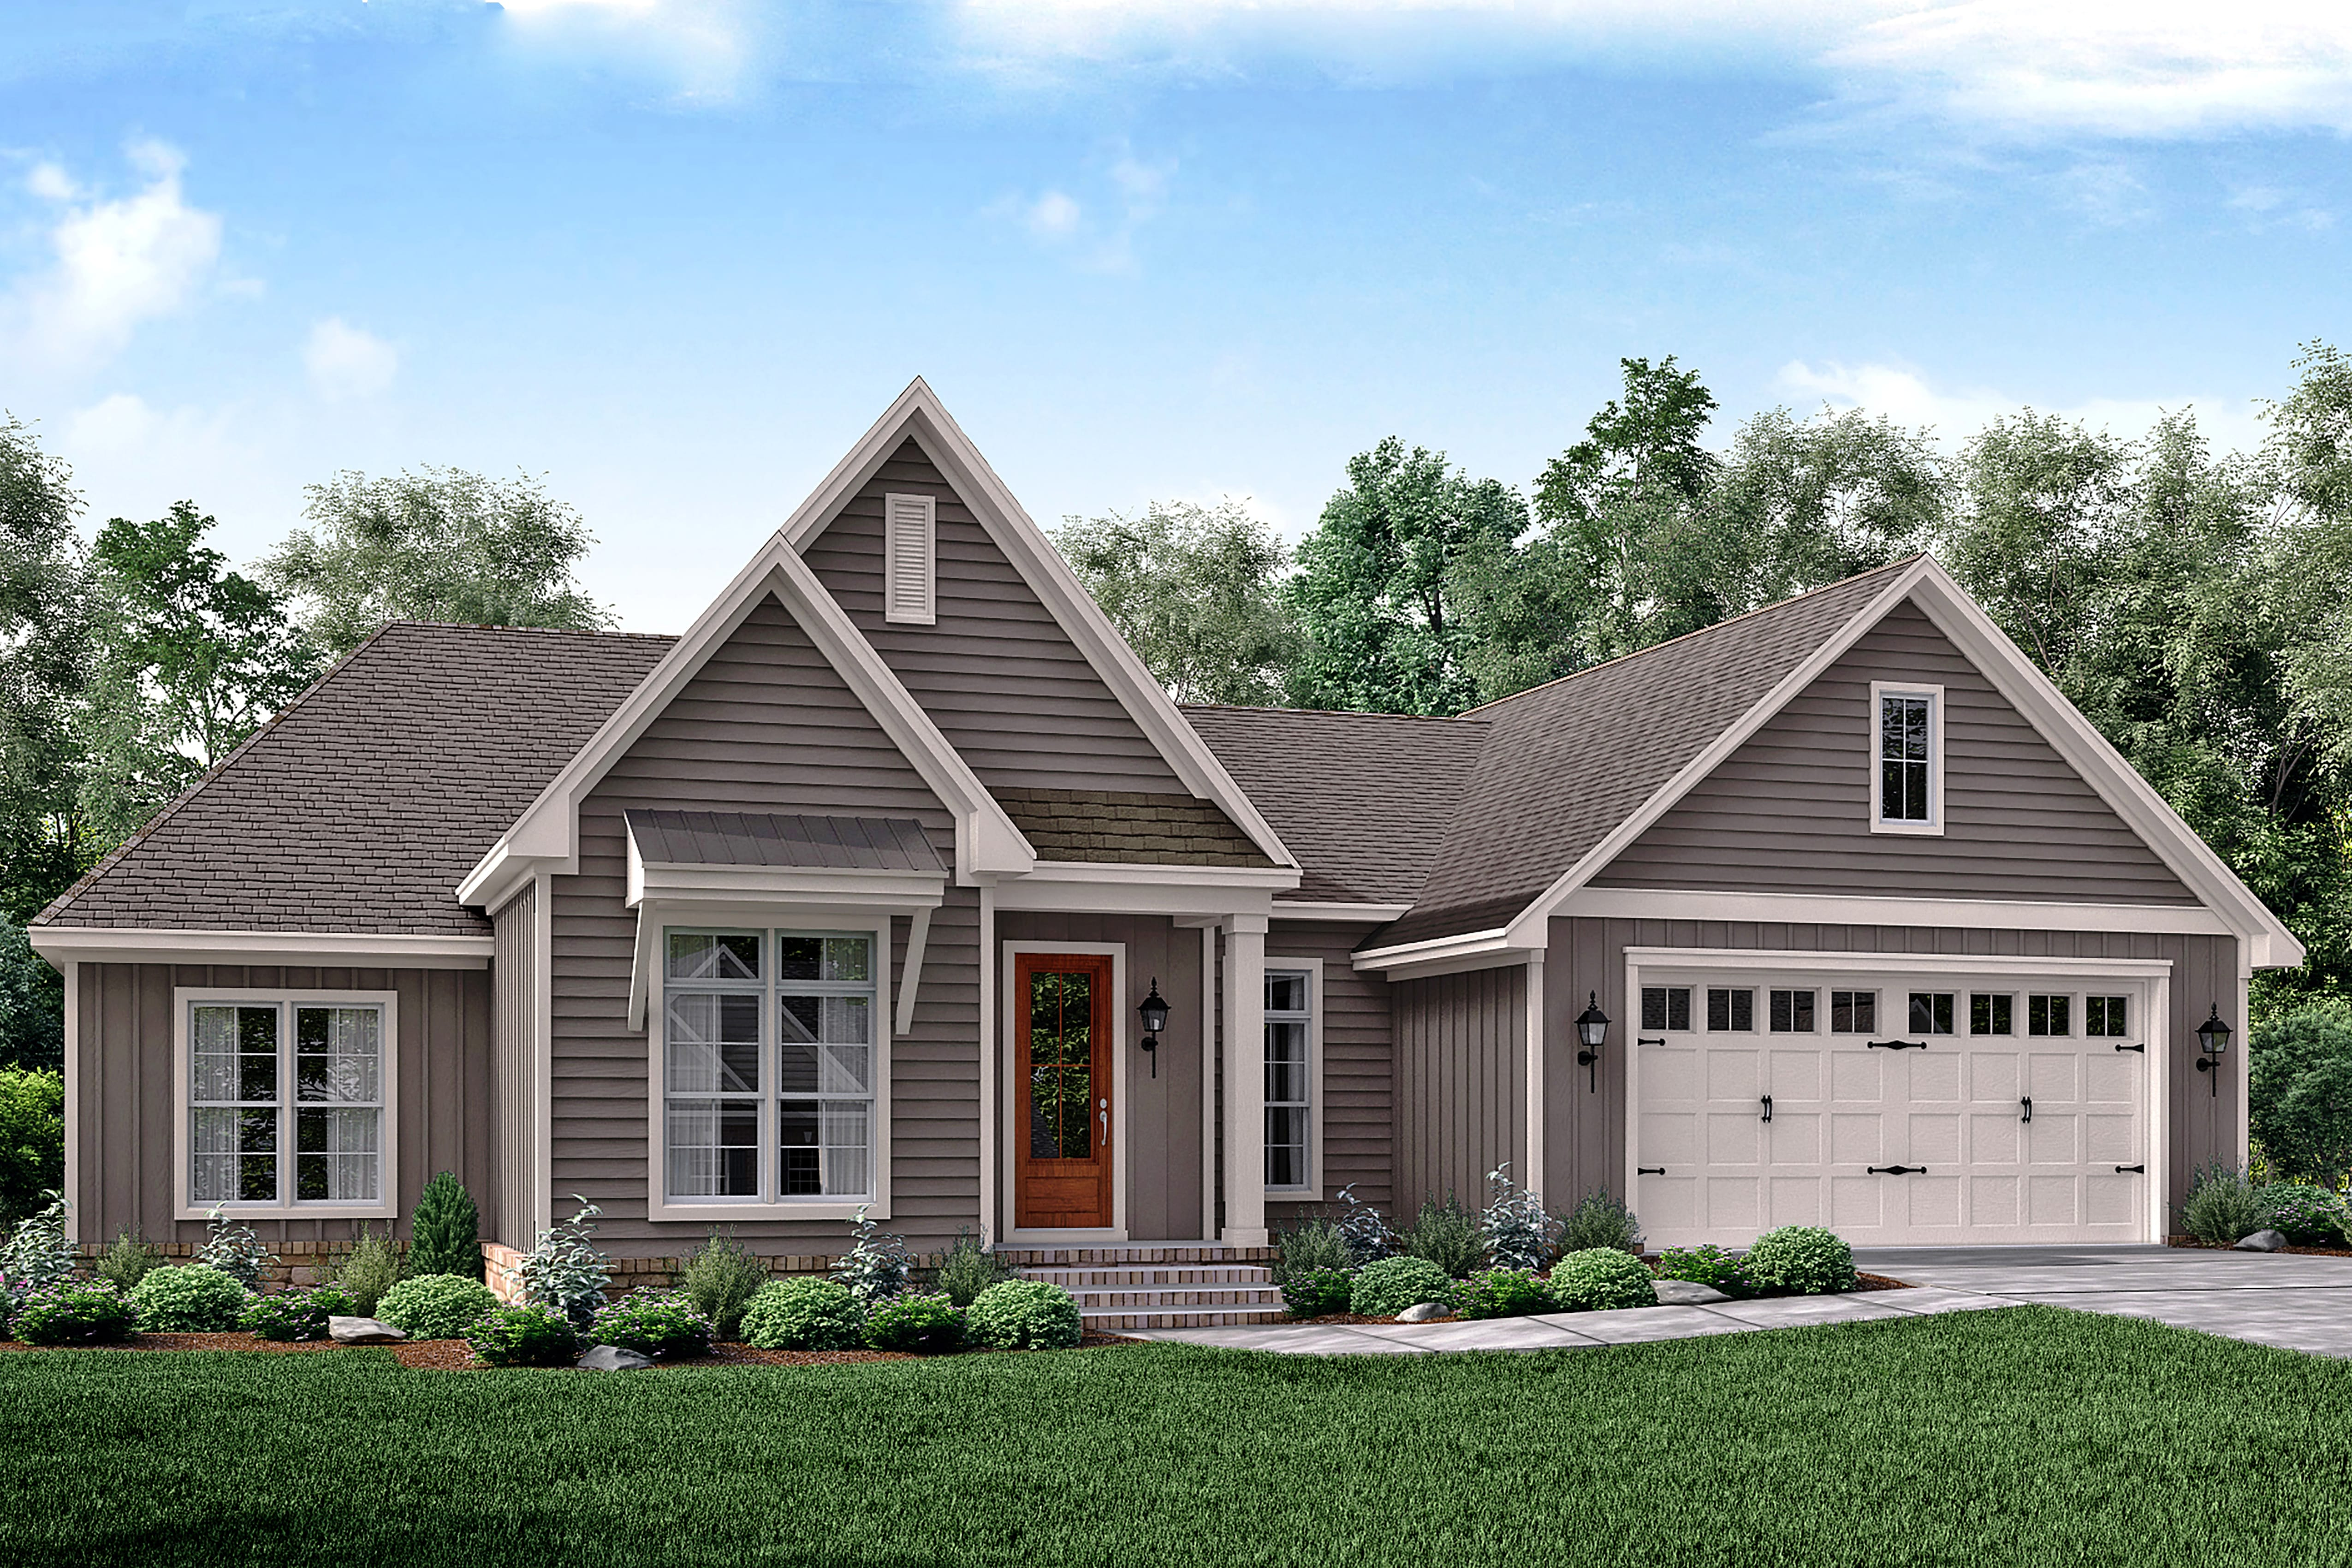 3 bedrm 2019 sq ft traditional house plan 142 1178 - Traditional home plans and designs ...